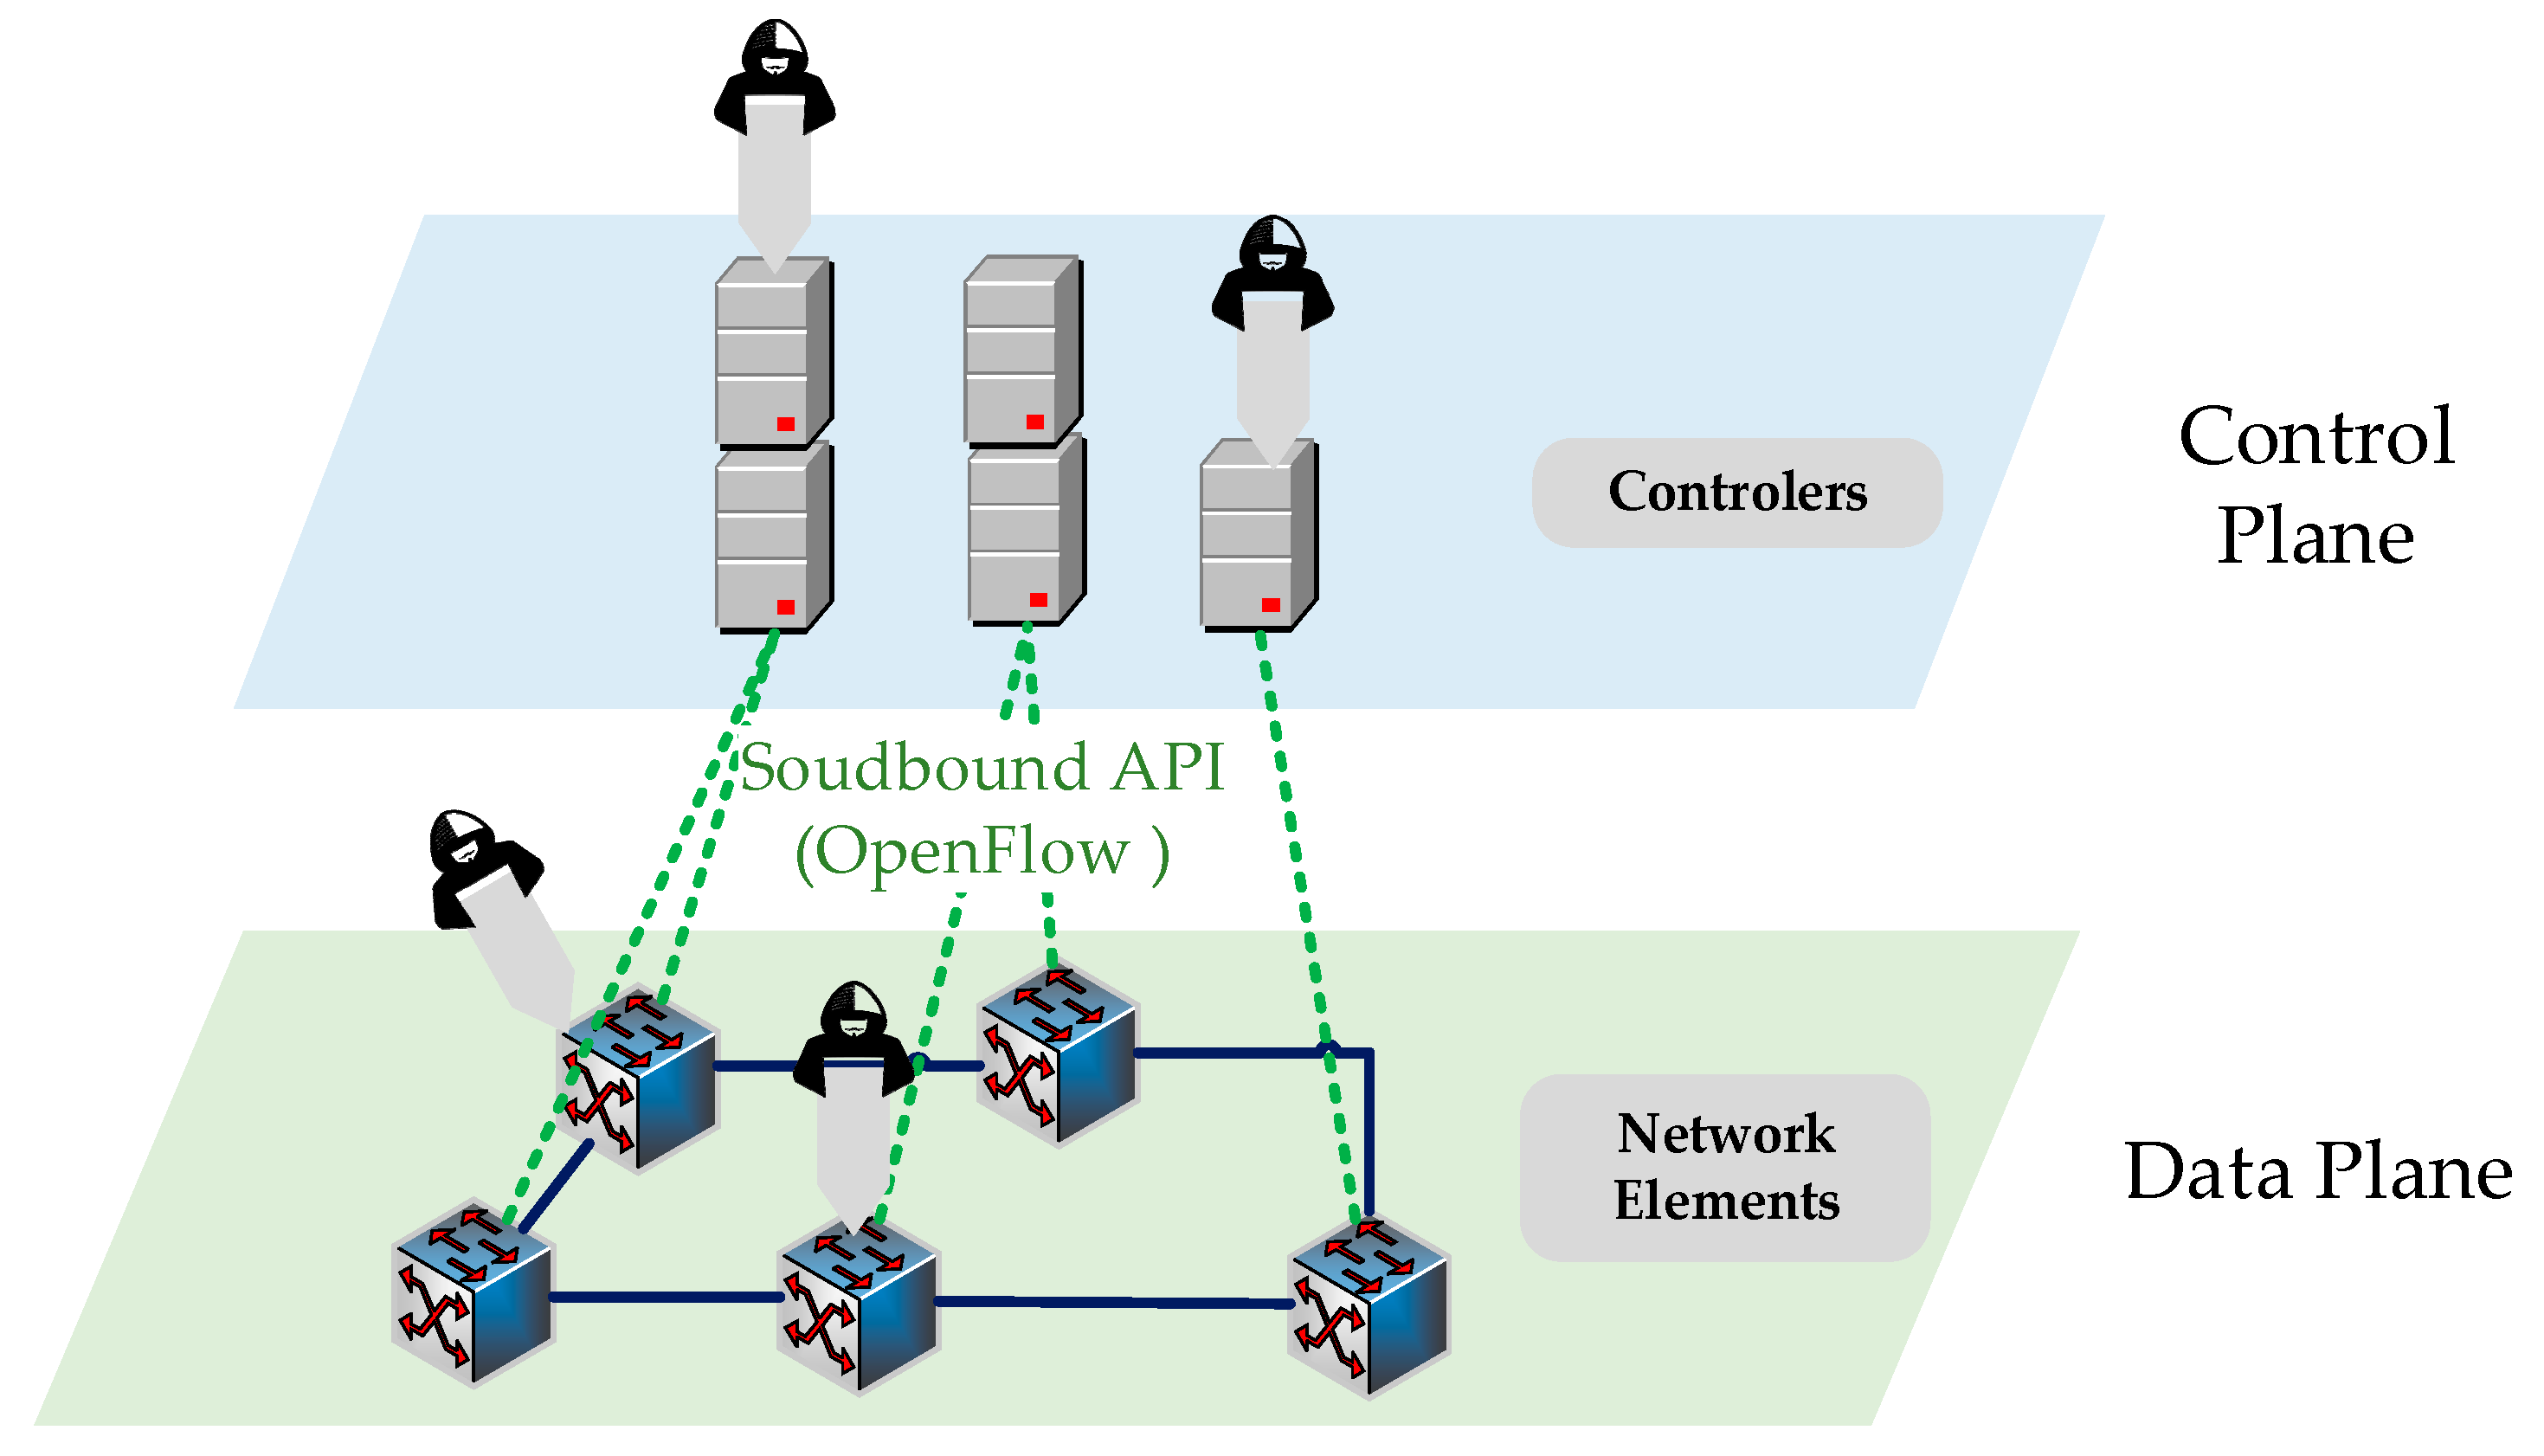 Sustainability | Free Full-Text | Detecting DDoS Attacks in  Software-Defined Networks Through Feature Selection Methods and Machine  Learning Models | HTML